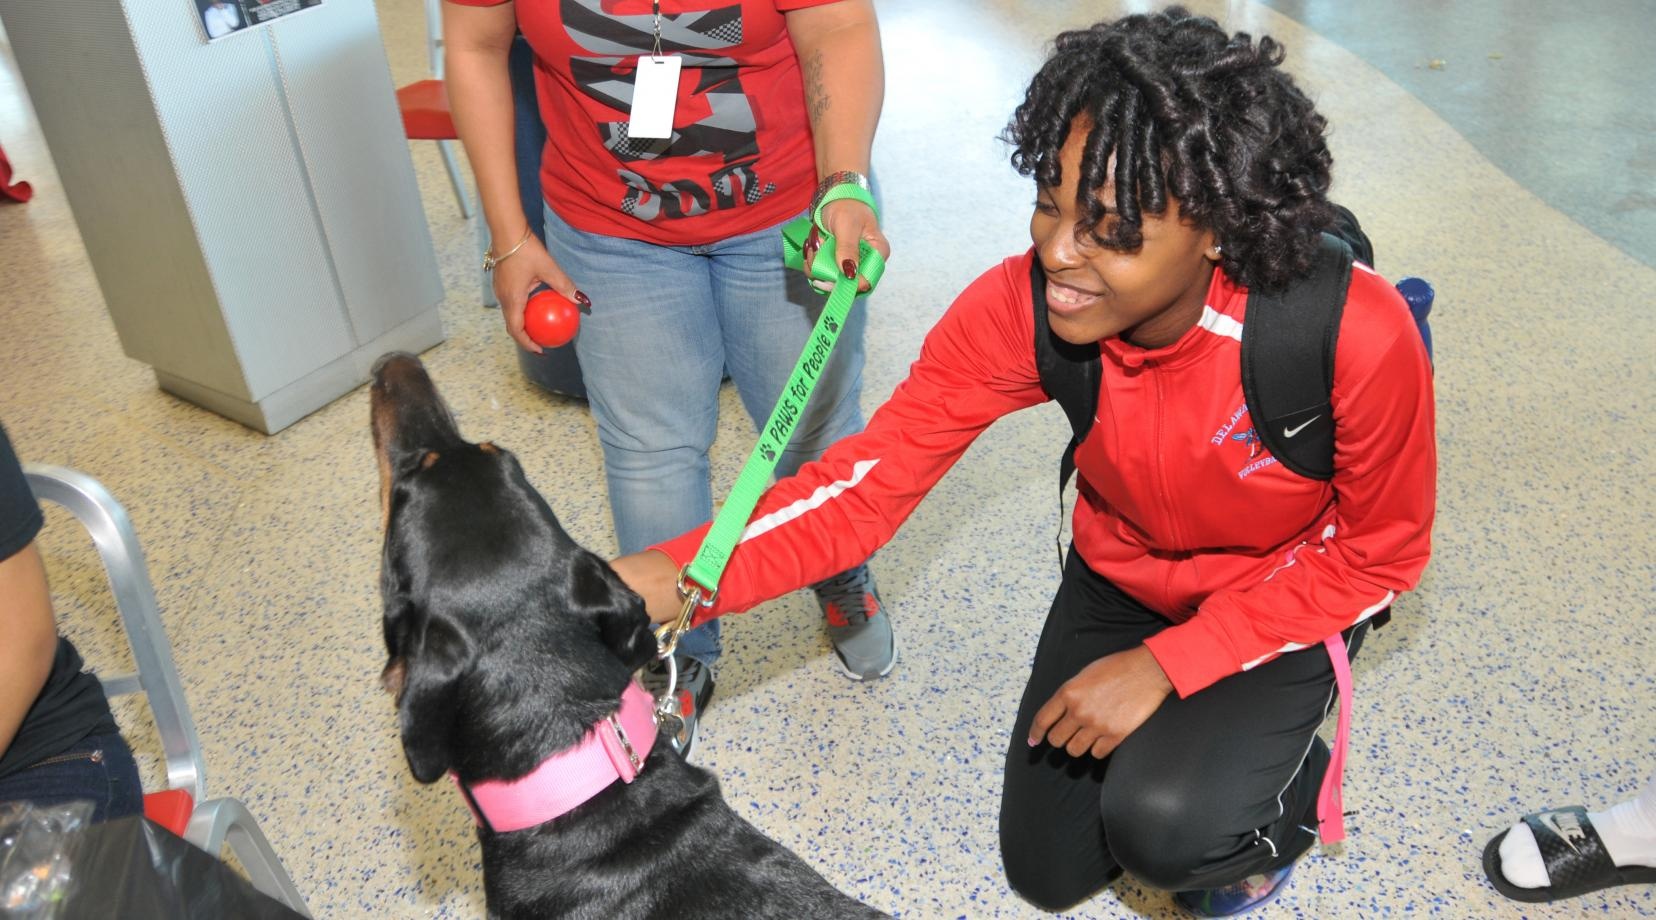 A DSU student learns how pet therapy can reduce stress and anxiety. Such information was shared as part of the National Public Health Week activities in the MLK Jr. Student Center on April 5.